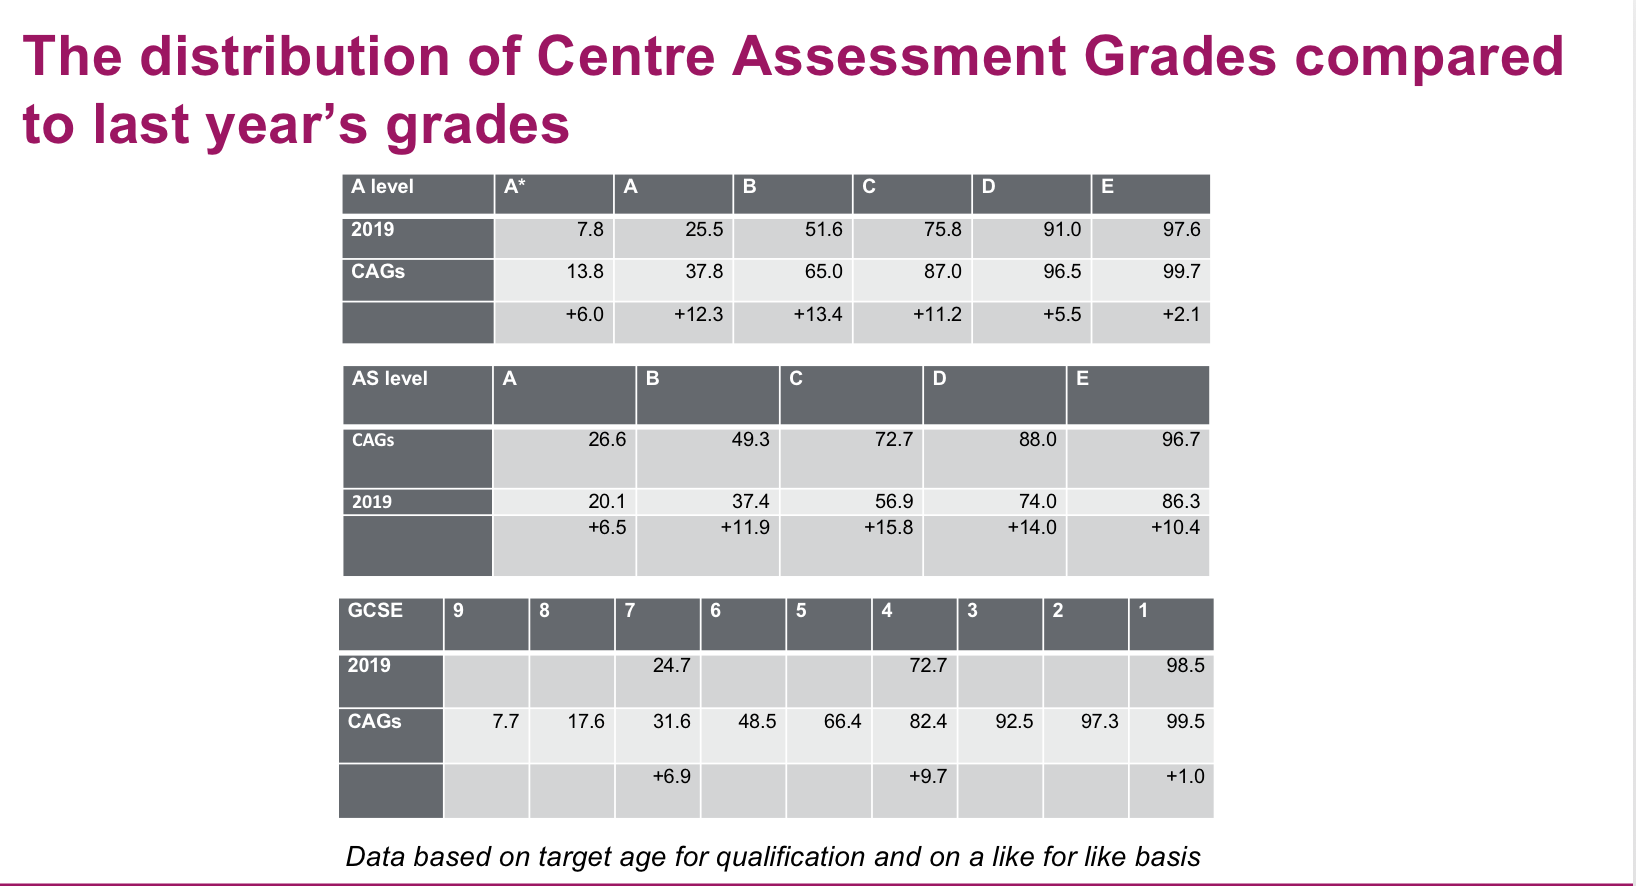 Figures show why Ofqual is to lower some of the optimistic grades submitted by schools and colleges at GCSE and A level.